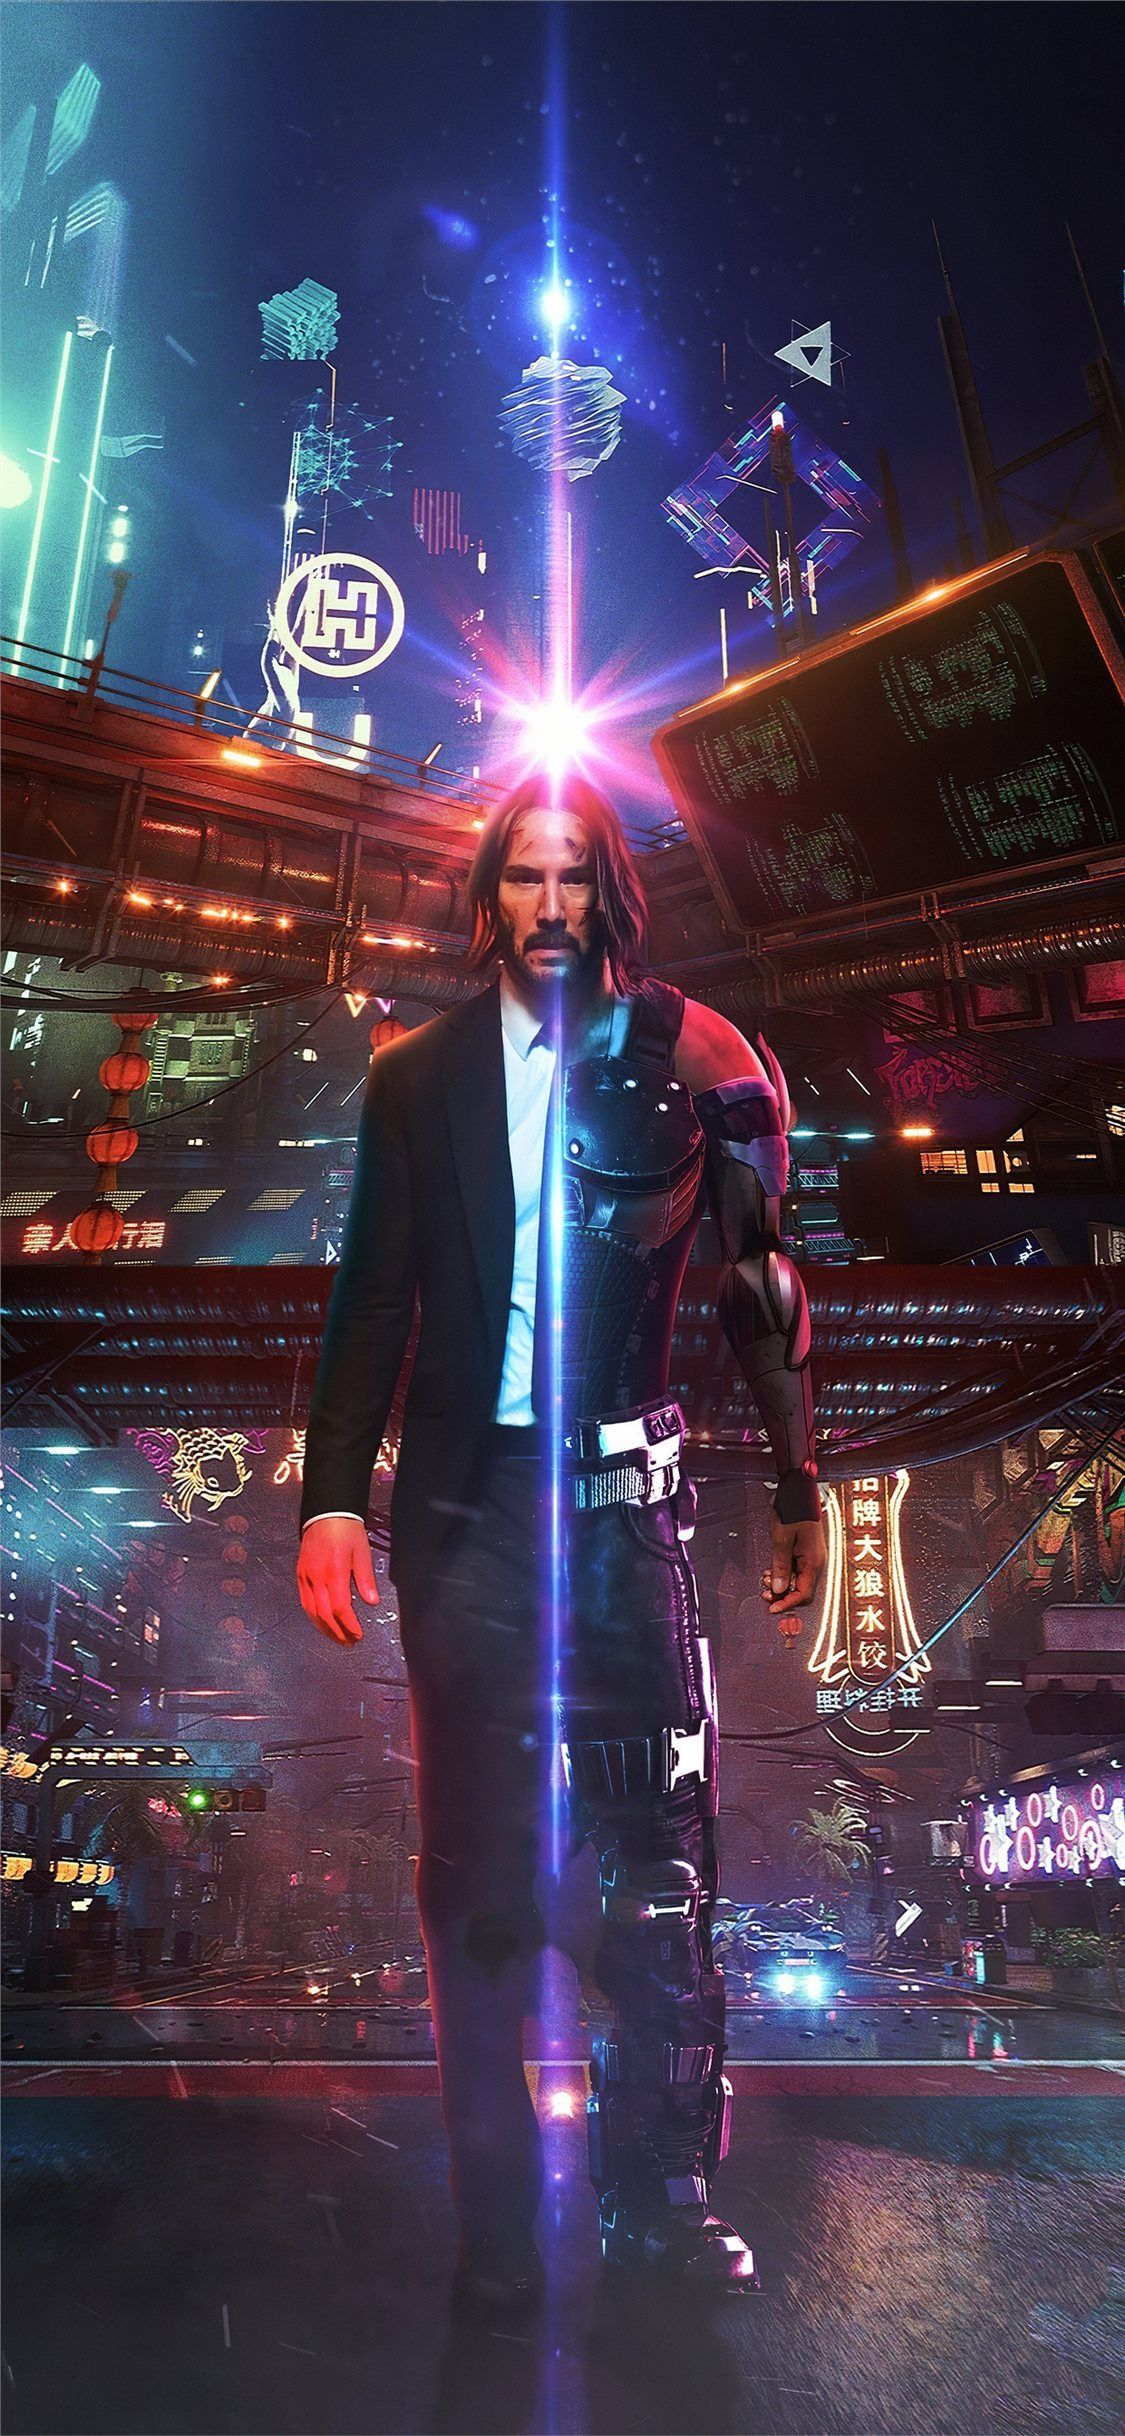 Free Download The John Wick As Cyberpunk Wallpaper Beaty Your Iphone John Wick 4k Cyberpunk 2077 Movi In 2020 Keanu Reeves John Wick Cyberpunk 2077 Keanu Reeves